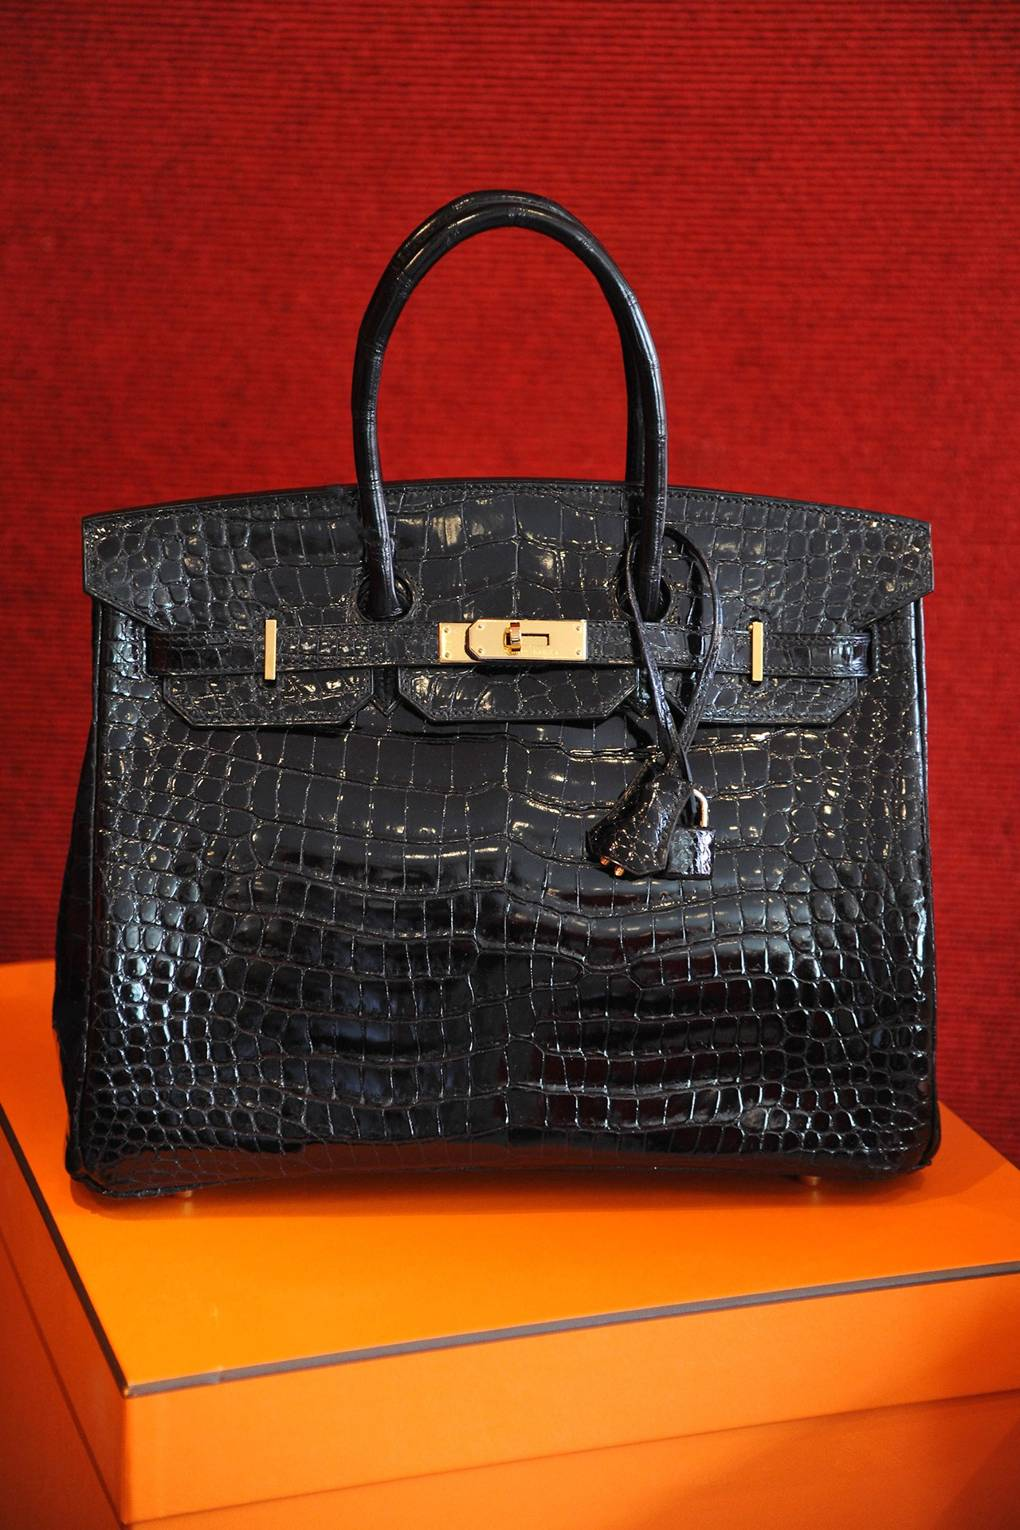 311989487b Jane Birkin Asks Remove Name Hermes Bag Peta Investigation